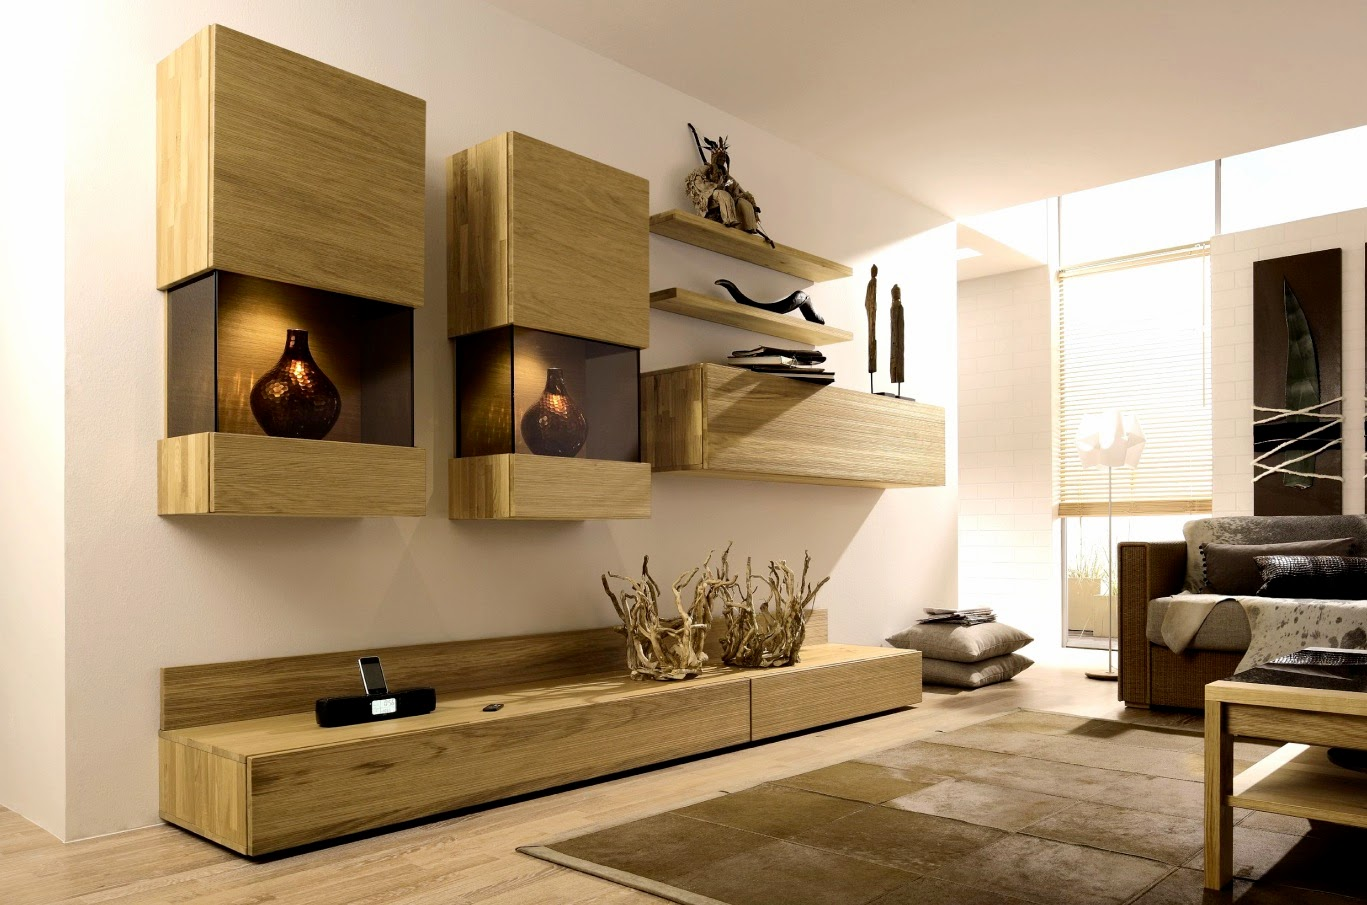 tv unit design ideas living room. modern tv wall units for living room  TV designs ideas Stylish in style